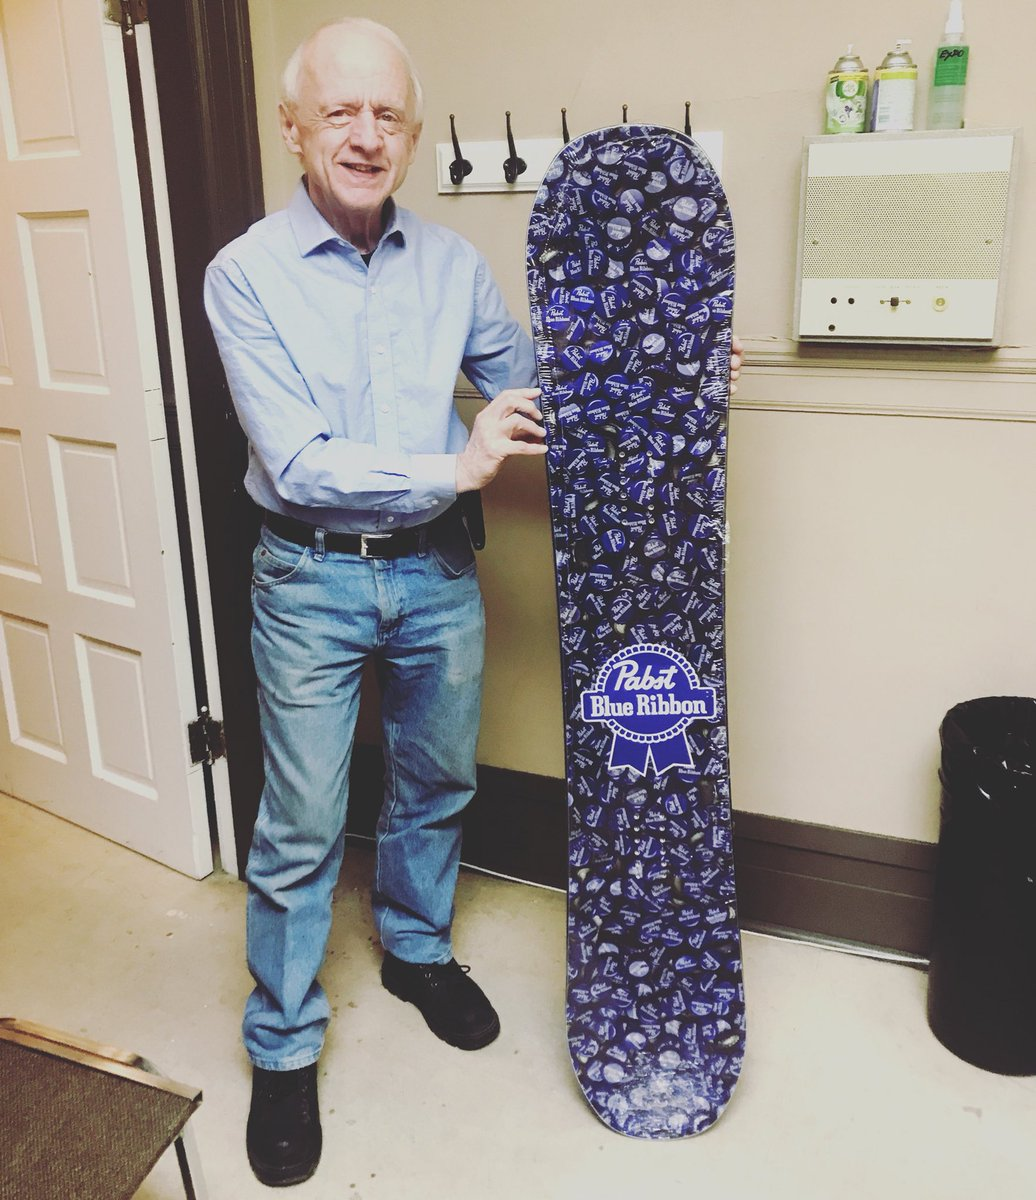 This snowboard donated by 4th Street Liquor will be available at our silent auction this Saturday. The Spring Fling starts at 6:30pm. Stop by for live music, food by @BelleBBQCalgary &amp; cash bar. #yyc #yycevents <br>http://pic.twitter.com/zTfZ7wb2qa